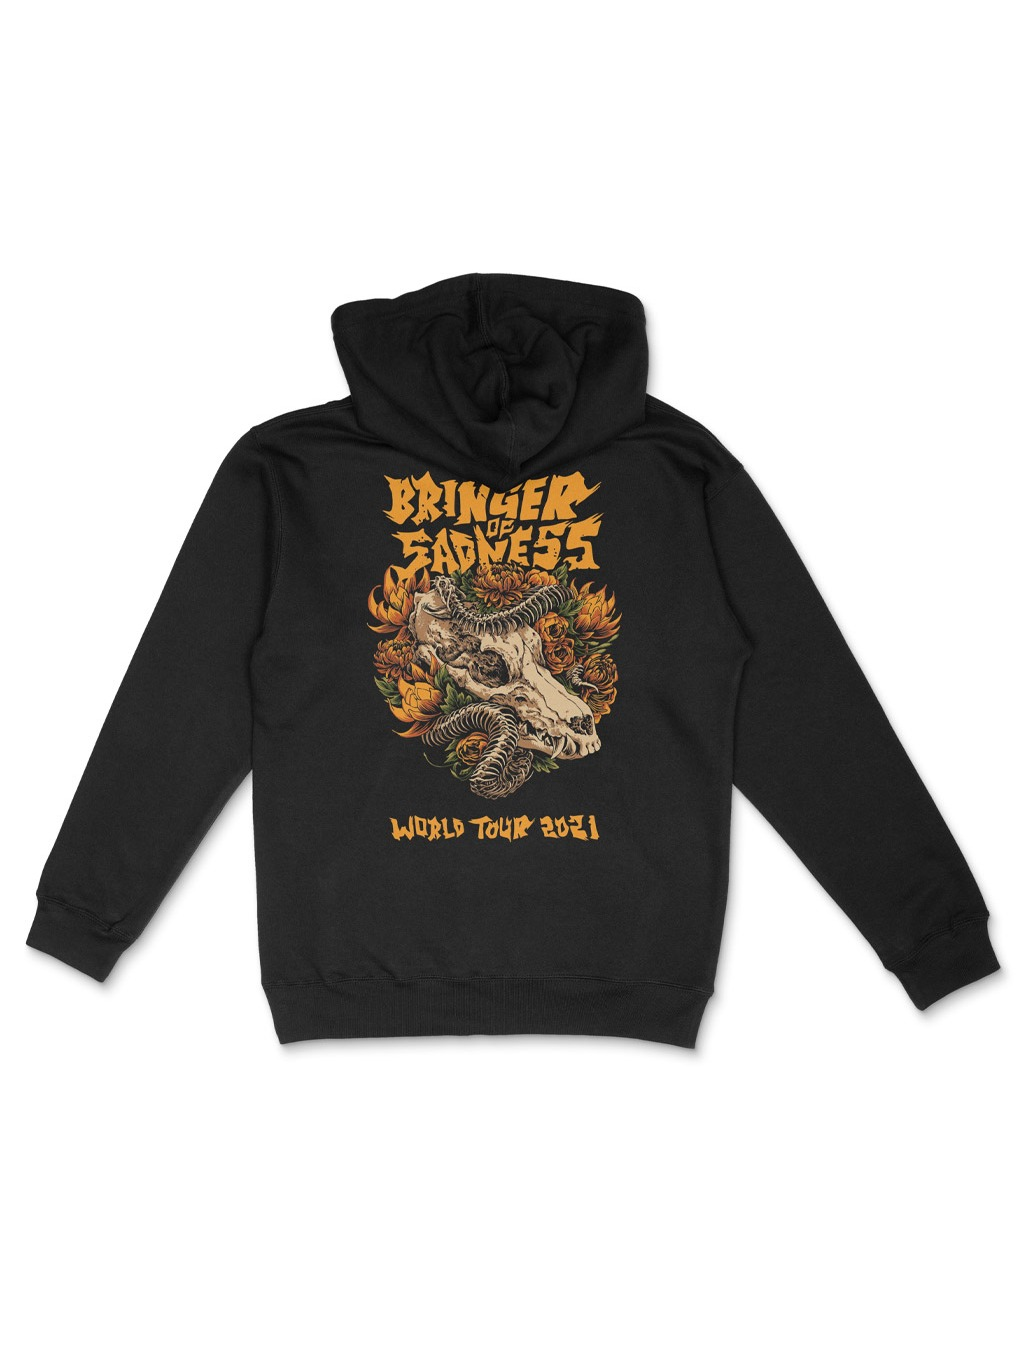 Bringer of Sadness World Tour 2021 Hoodie product image (1)